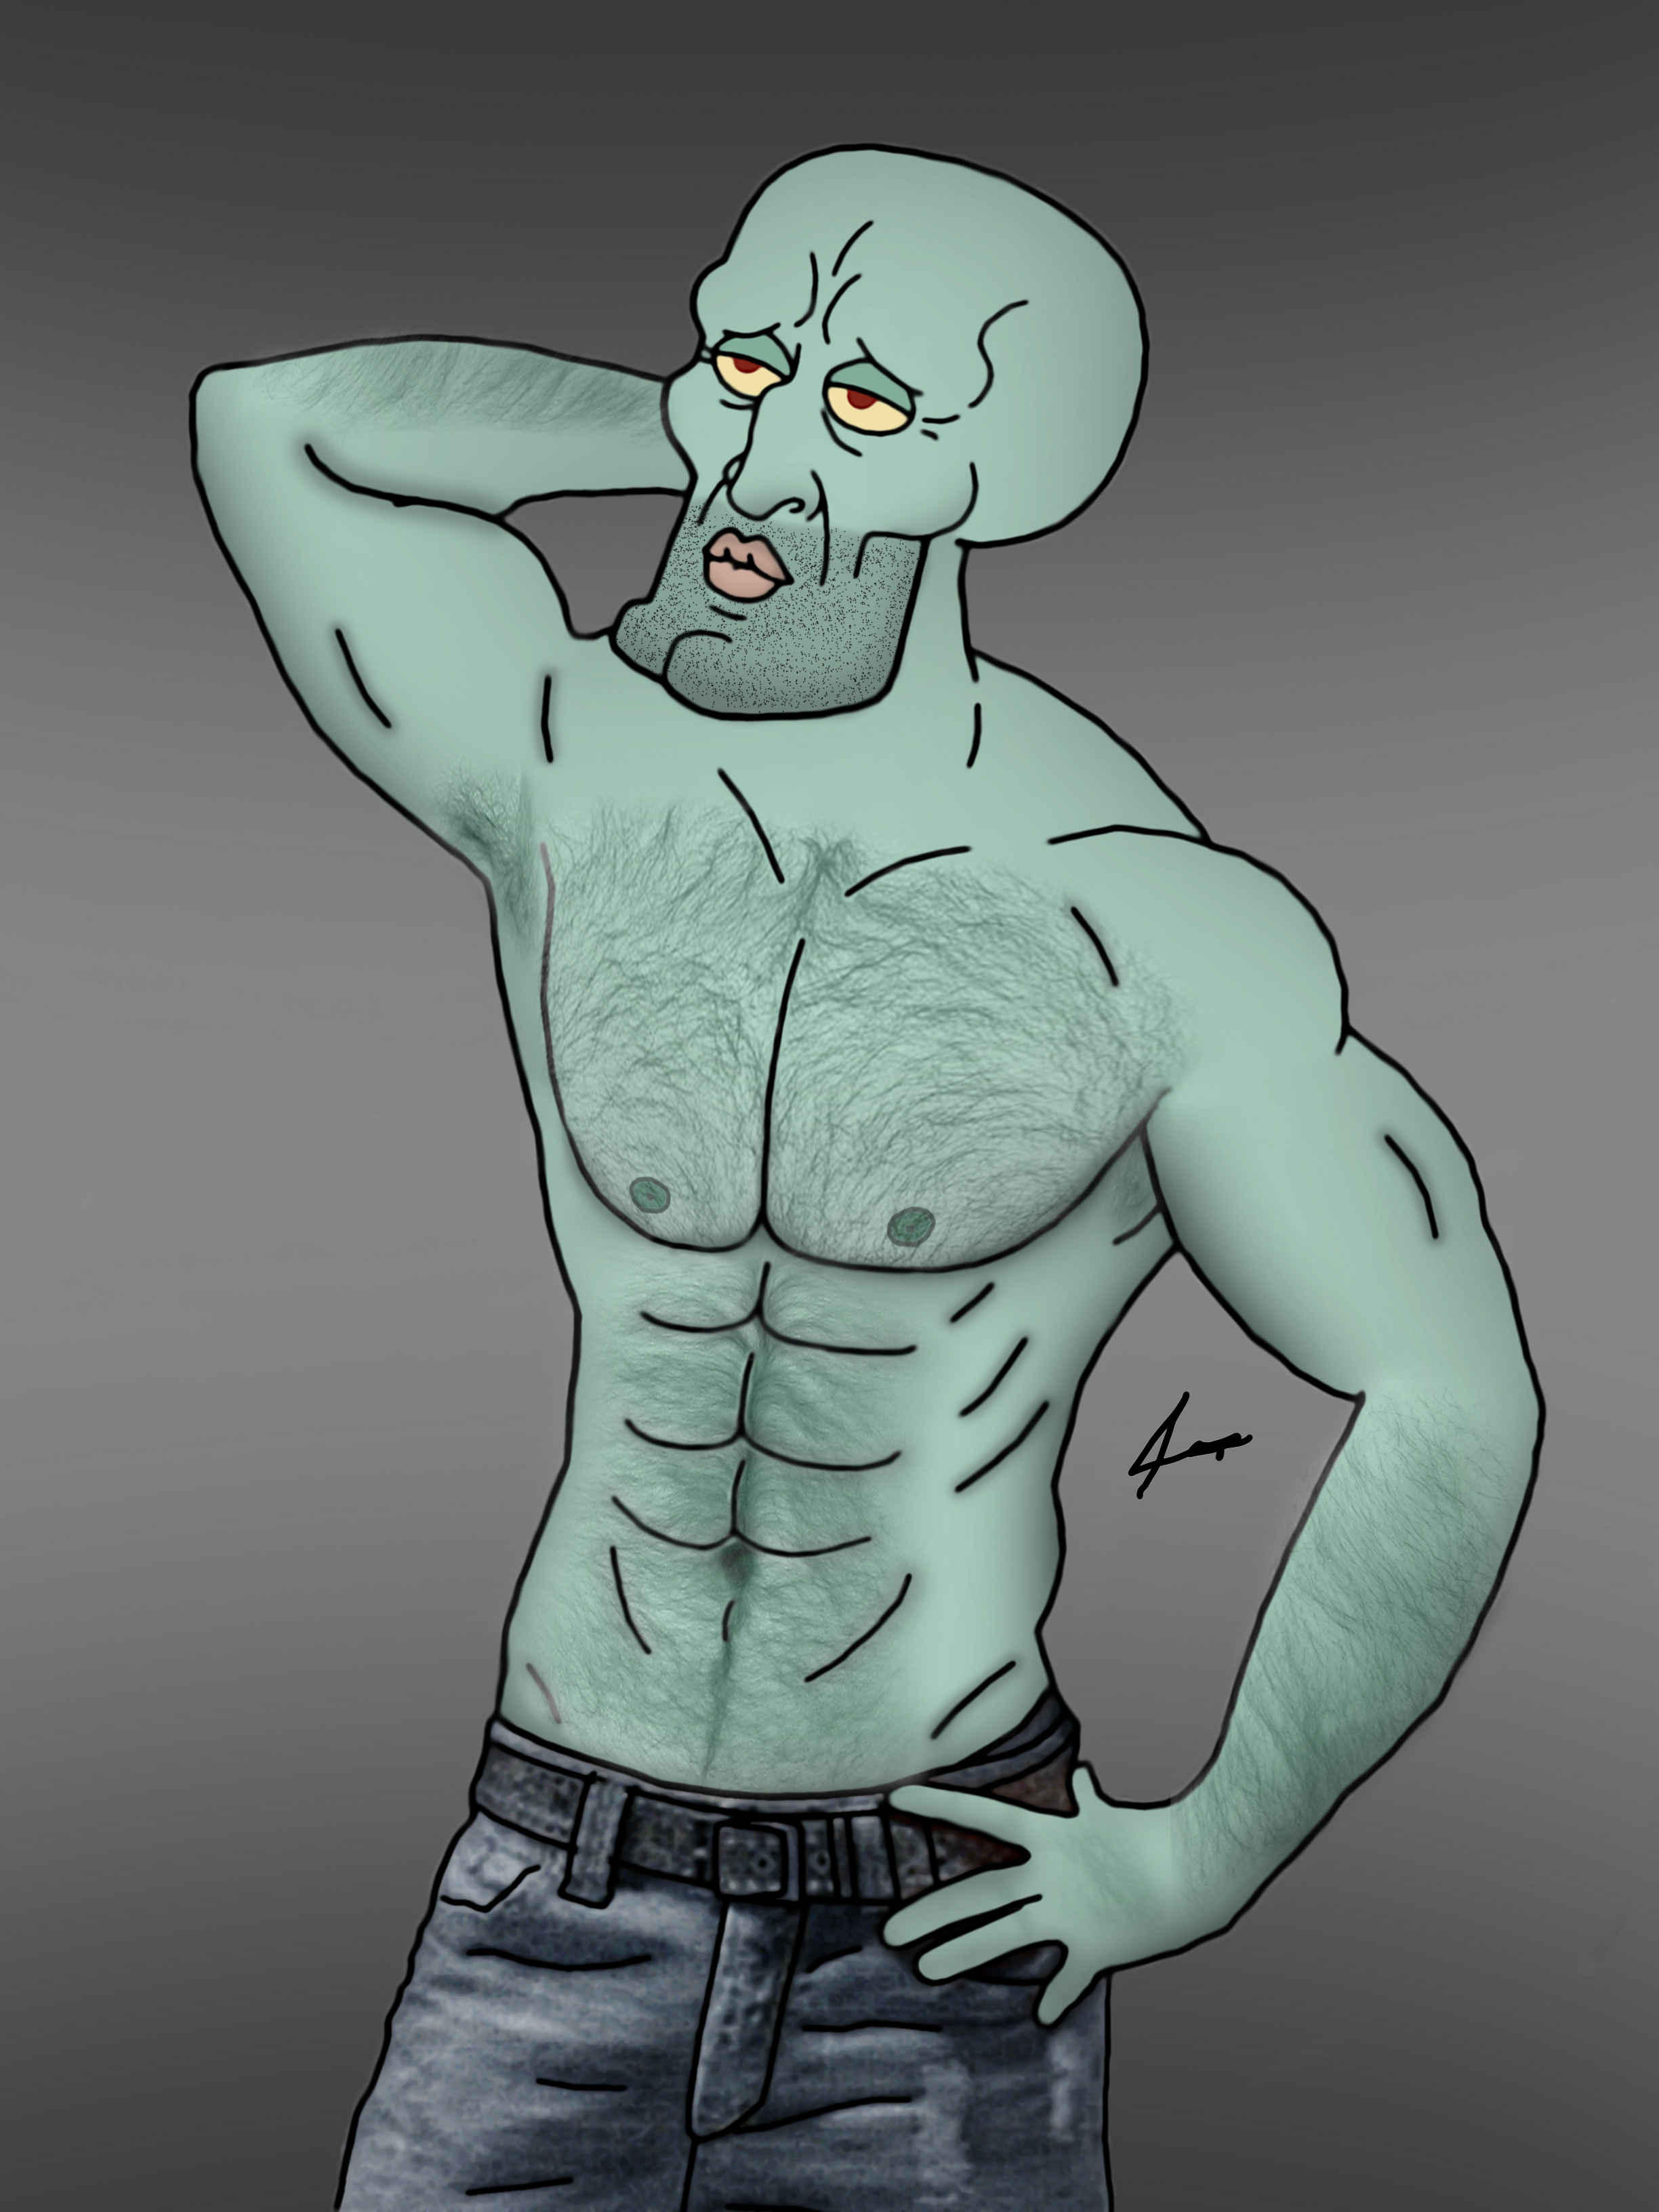 handsome squidward by adigitalproduction on deviantart